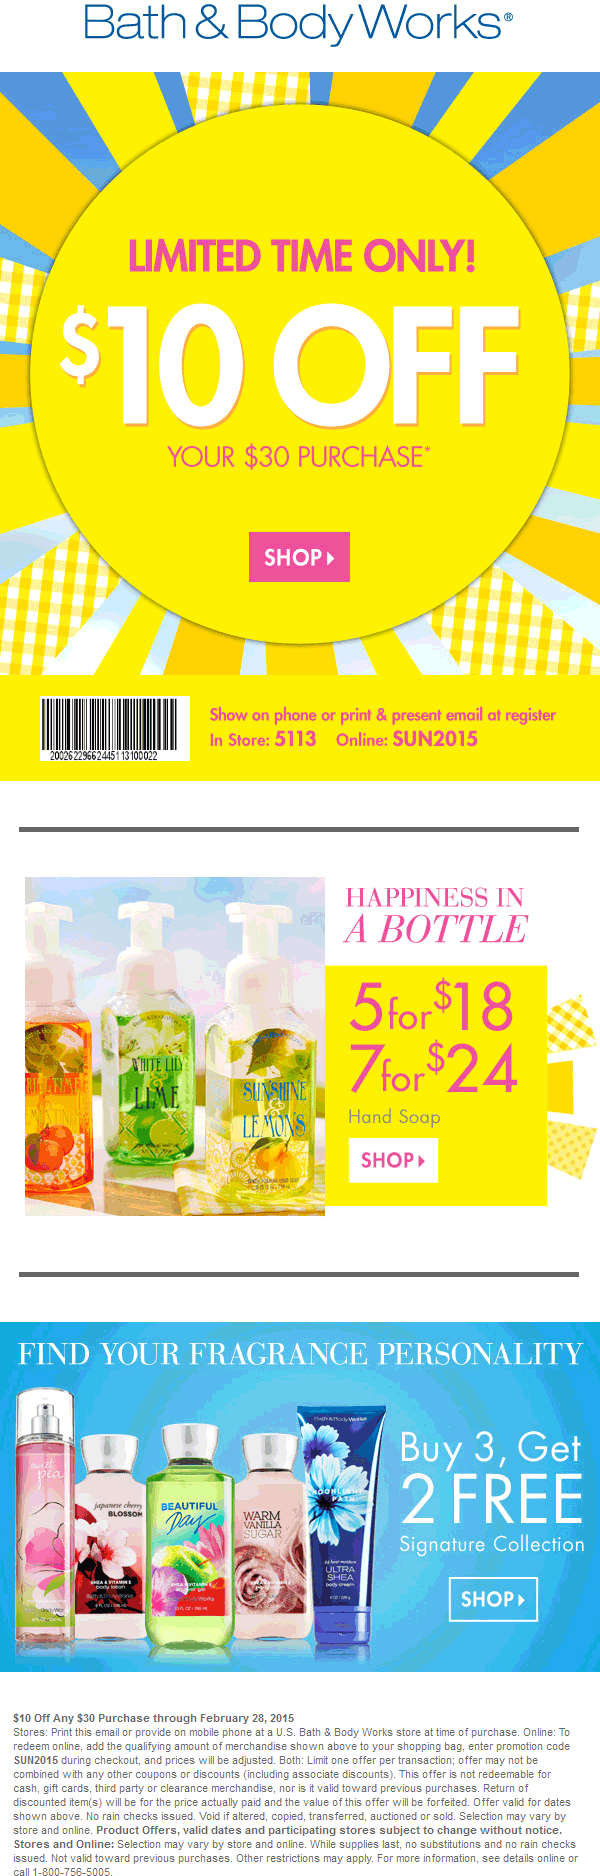 Bath & Body Works Coupon June 2017 $10 off $30 at Bath & Body Works, or online via promo code SUN2015